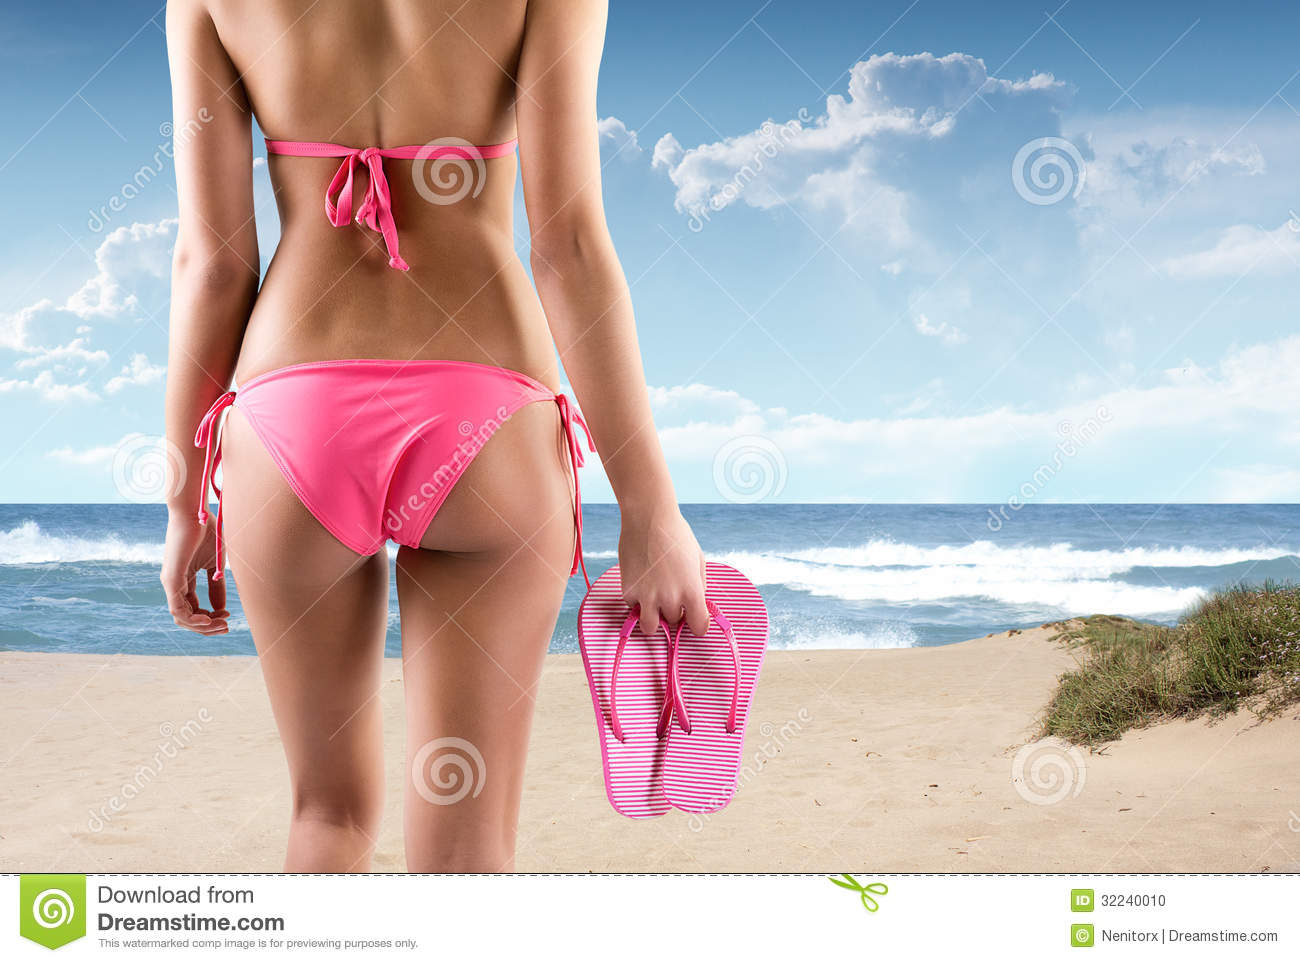 a9e8a99e76c0e2 Woman On A Beach With Bikini And Flip Flops Stock Photo - Image of ...